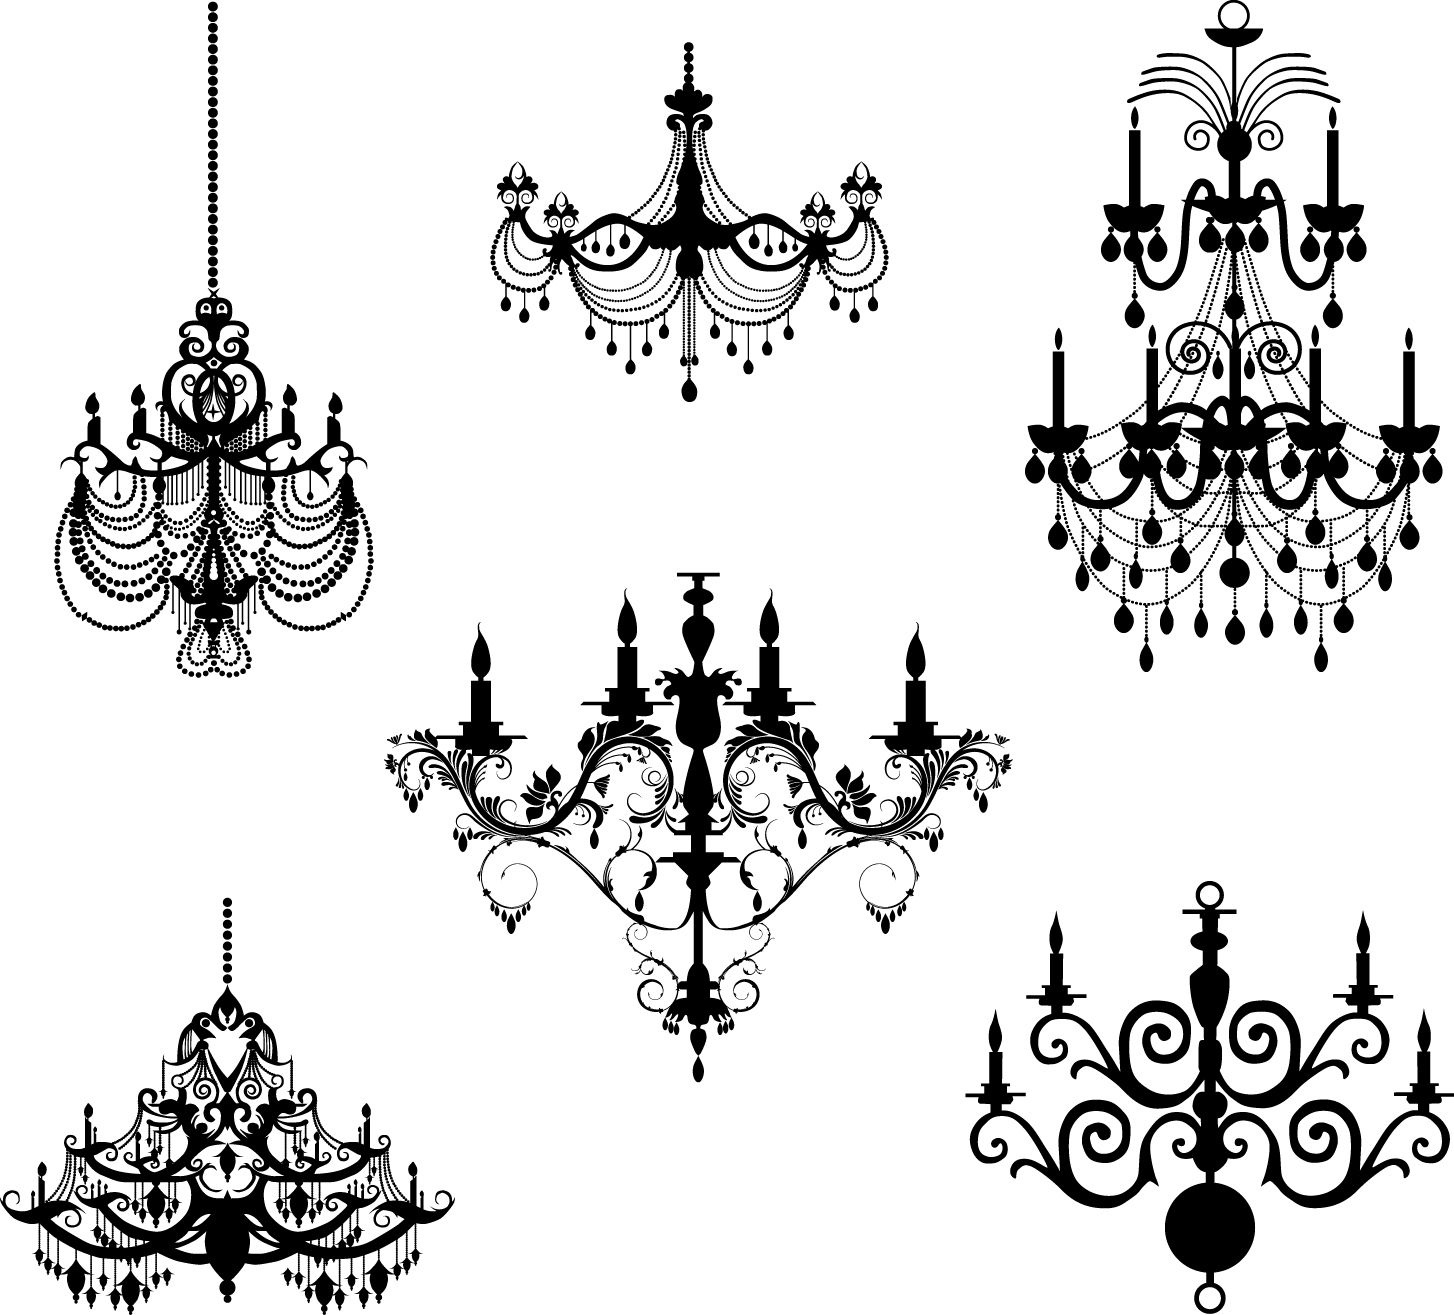 Chandelier Stencil Templates | Free Chandeliers In High Quality 12 - Free Printable Chandelier Template